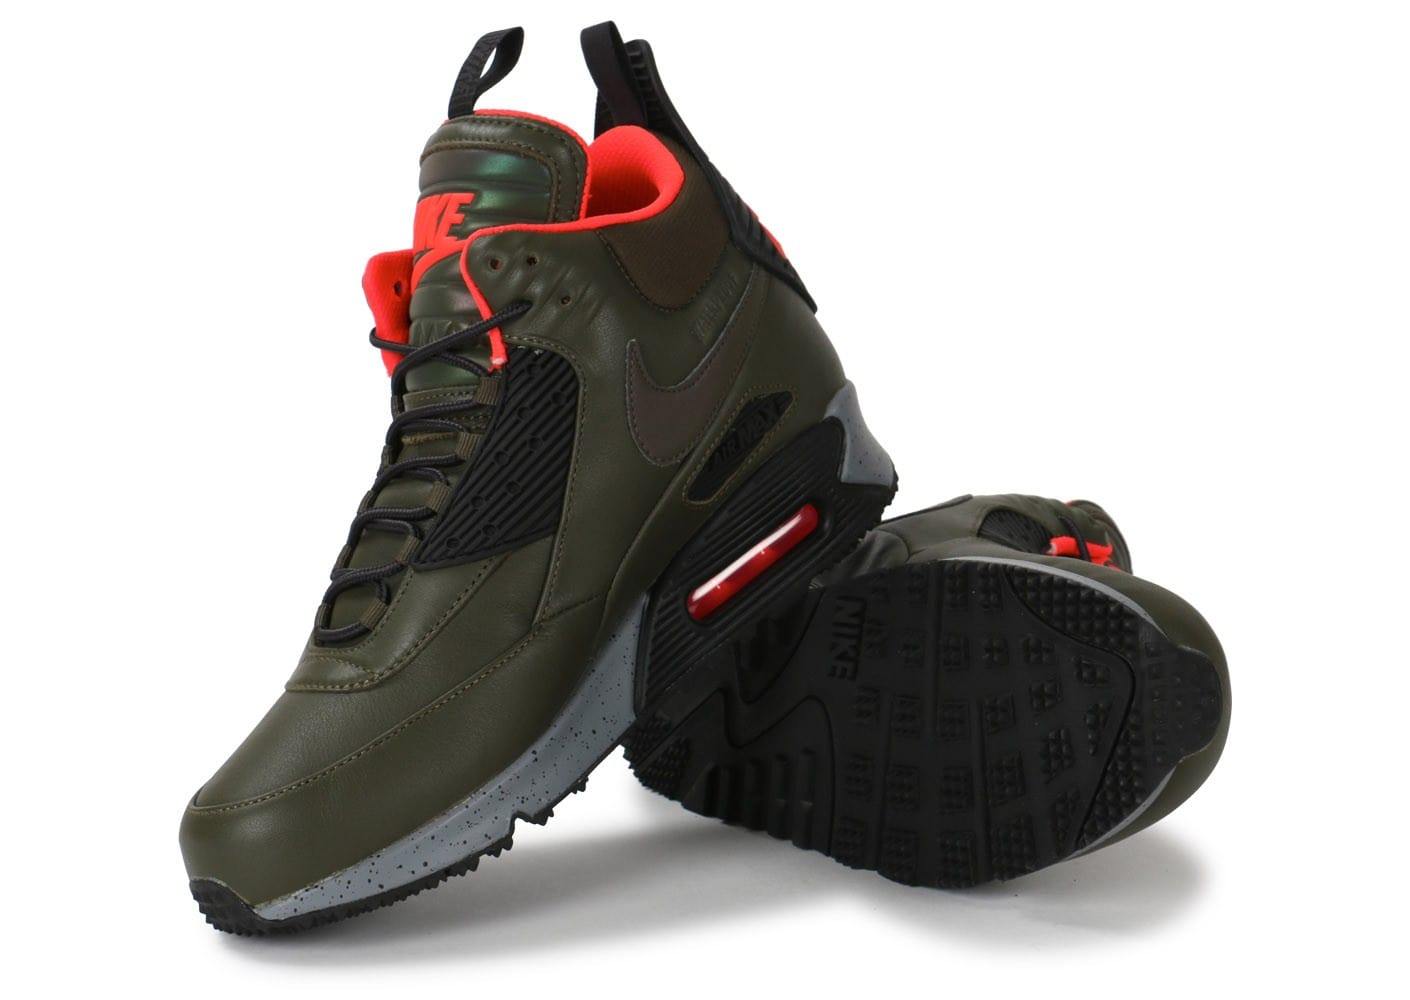 new arrivals 348d4 a39c5 ... Chaussures Nike Air Max 90 Sneakerboot Winter kaki vue intérieure ...